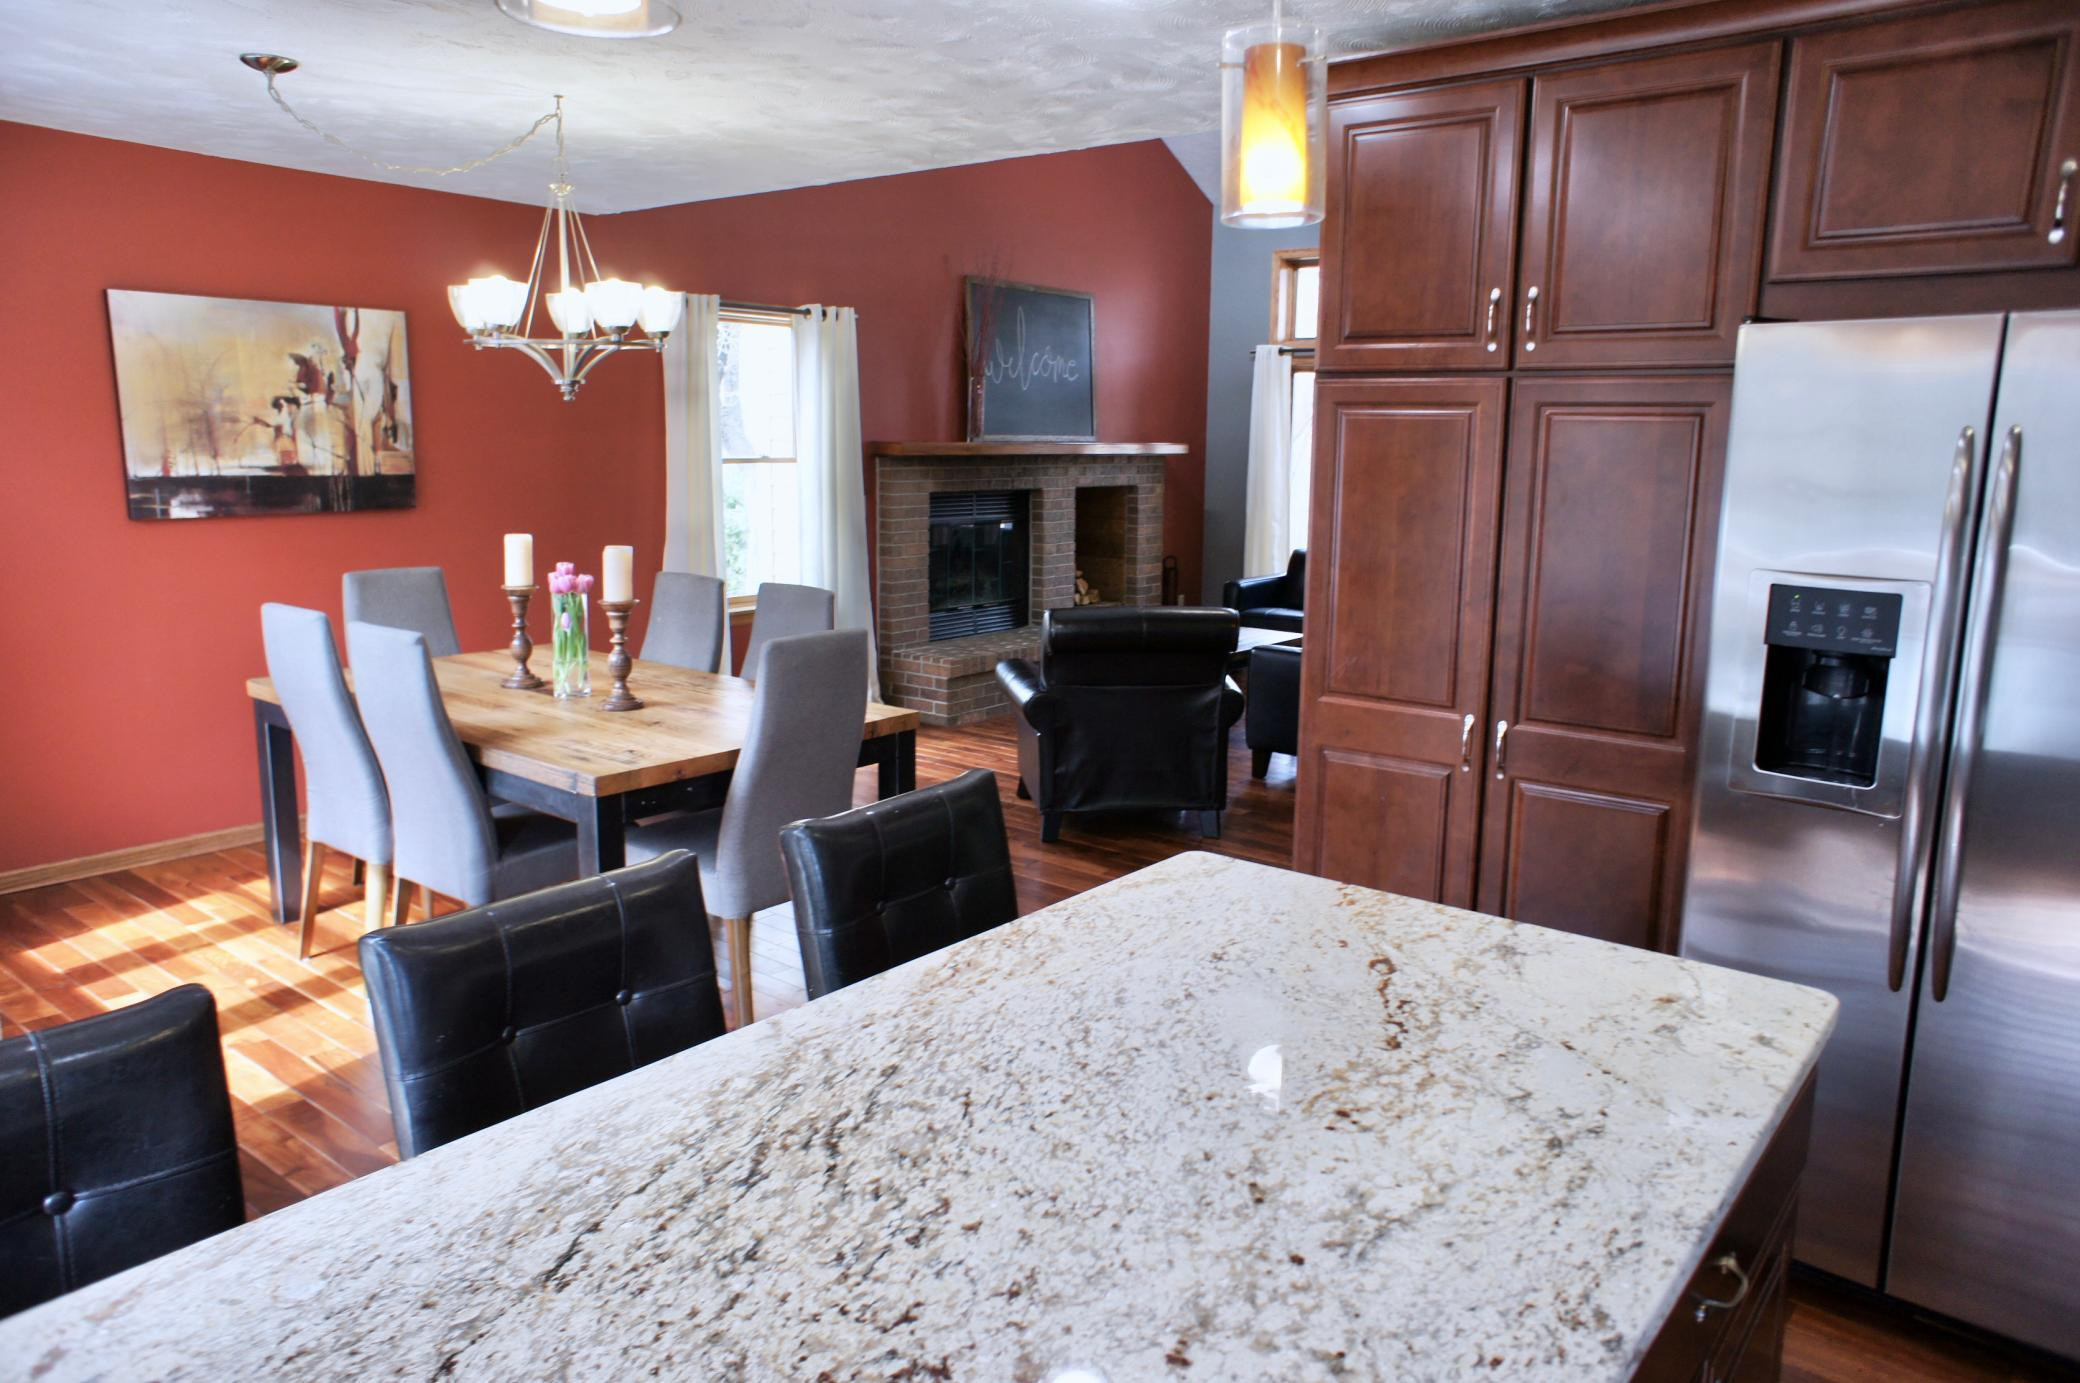 A great view the the kitchen island space overlooking the dining and living rooms